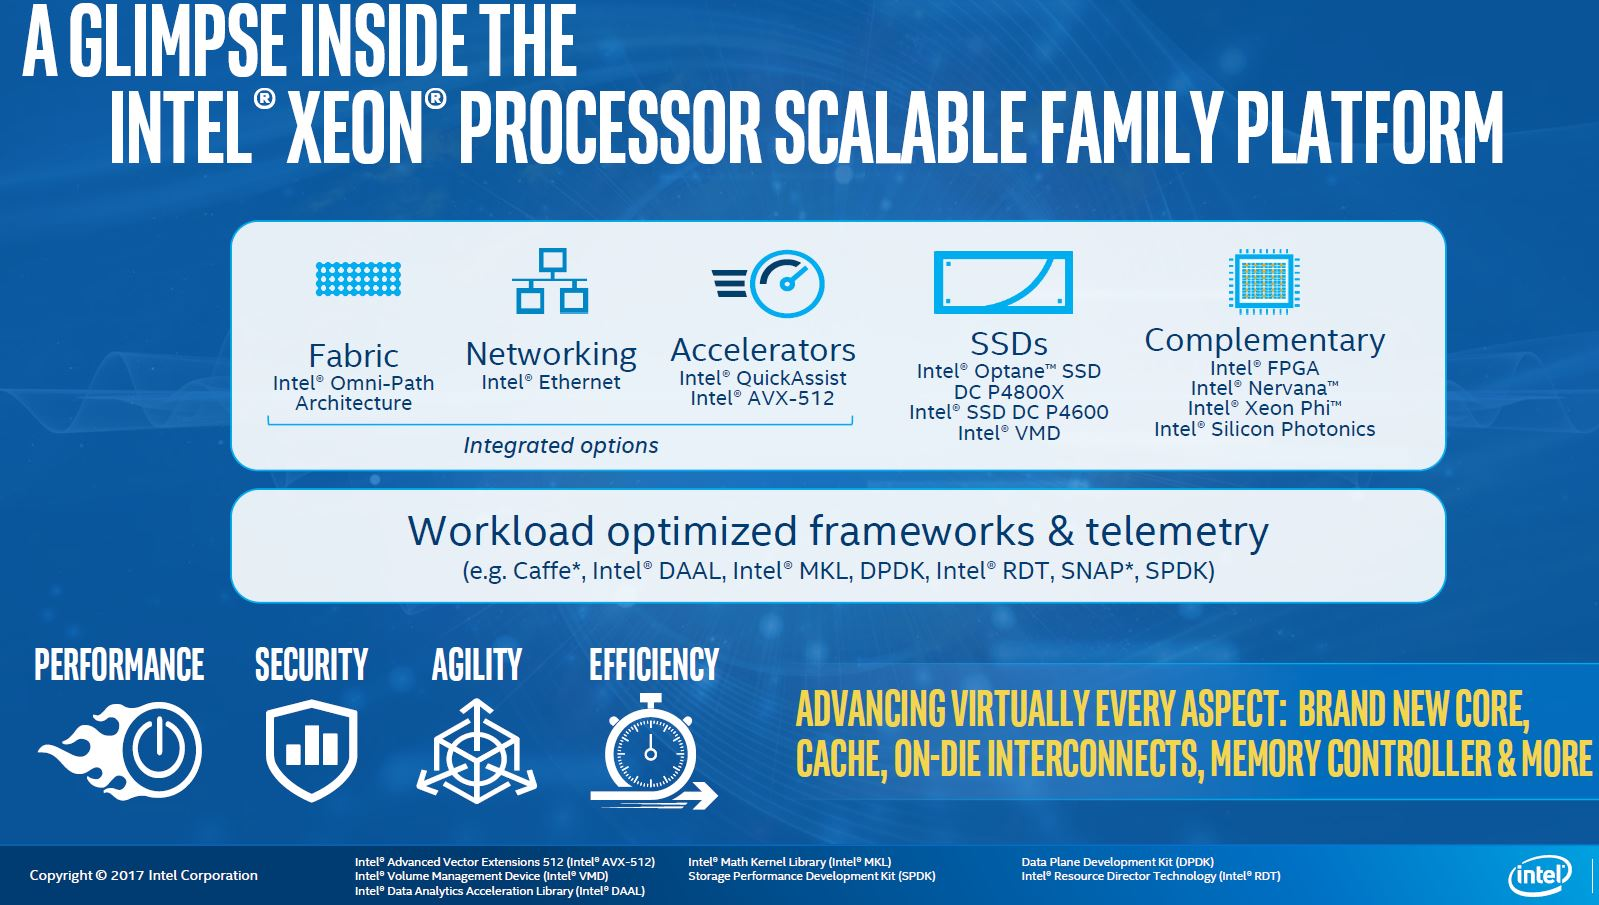 Intel Xeon Processor Scalable Family Platform Features